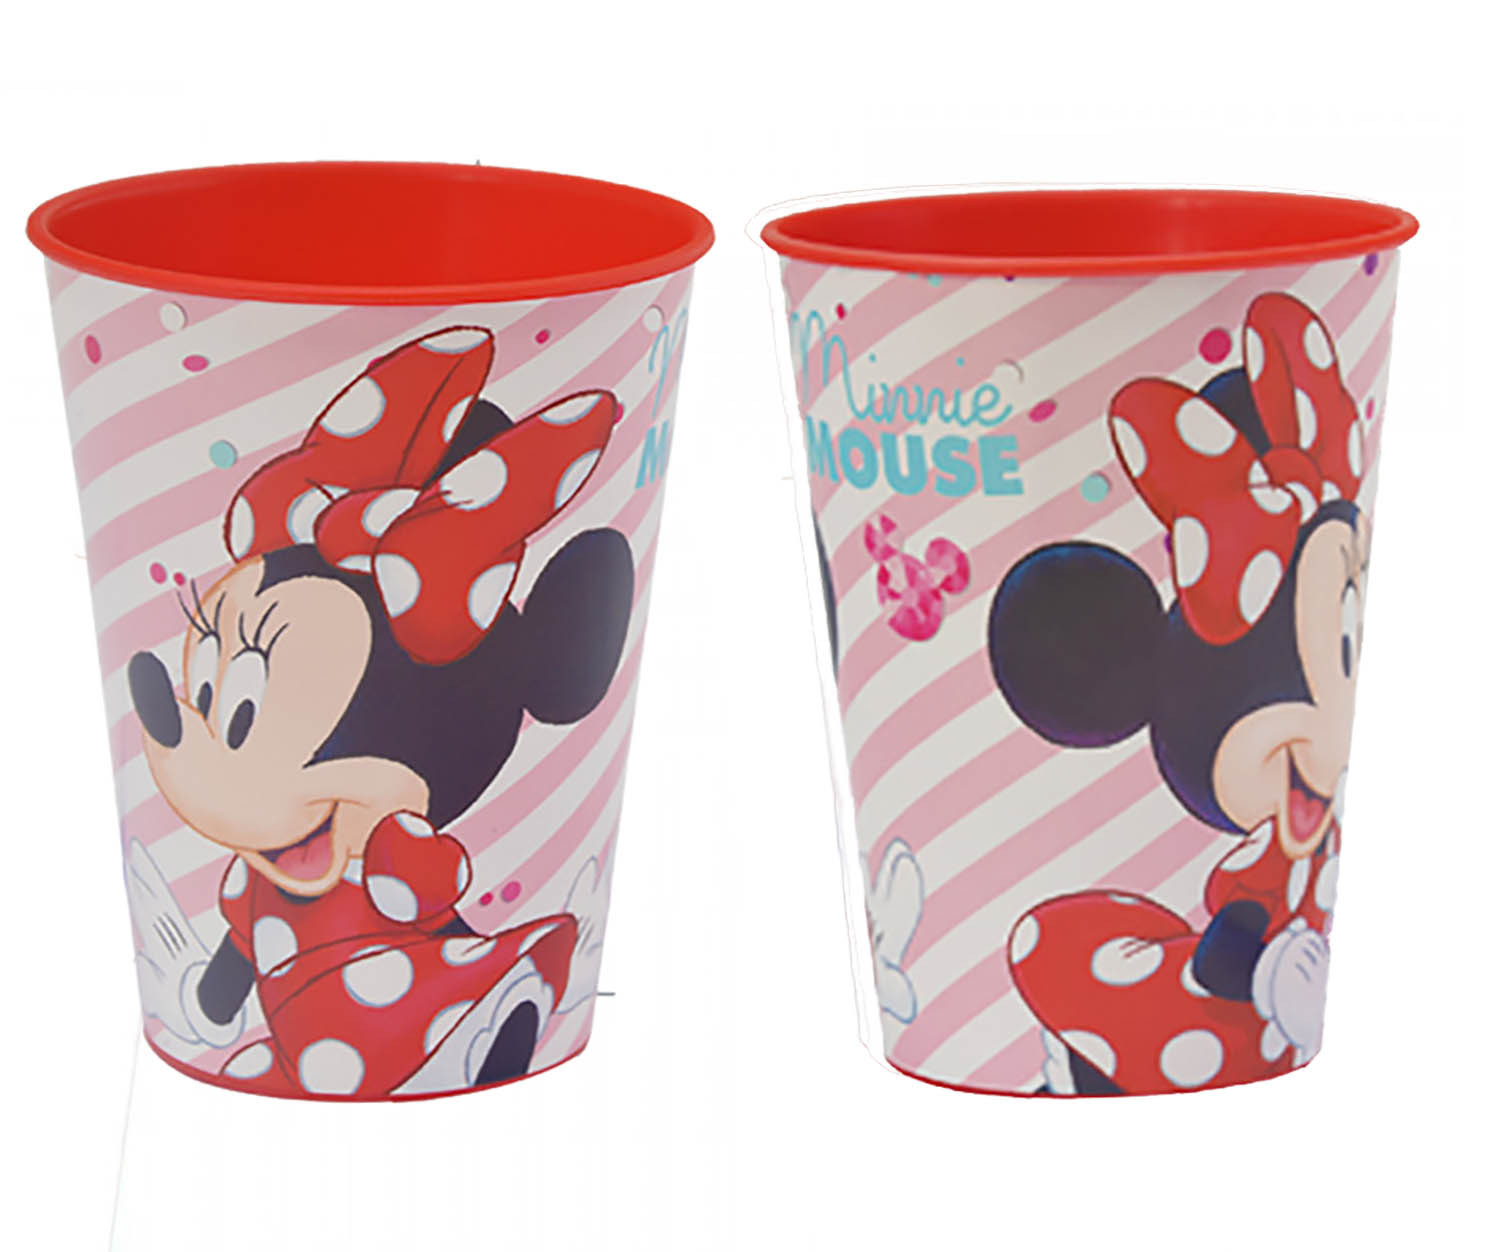 Glass, Hard Plastic, Reusable, for Kids, Pink, 260ML. Model Minnie Mouse, with style Child - Home and More